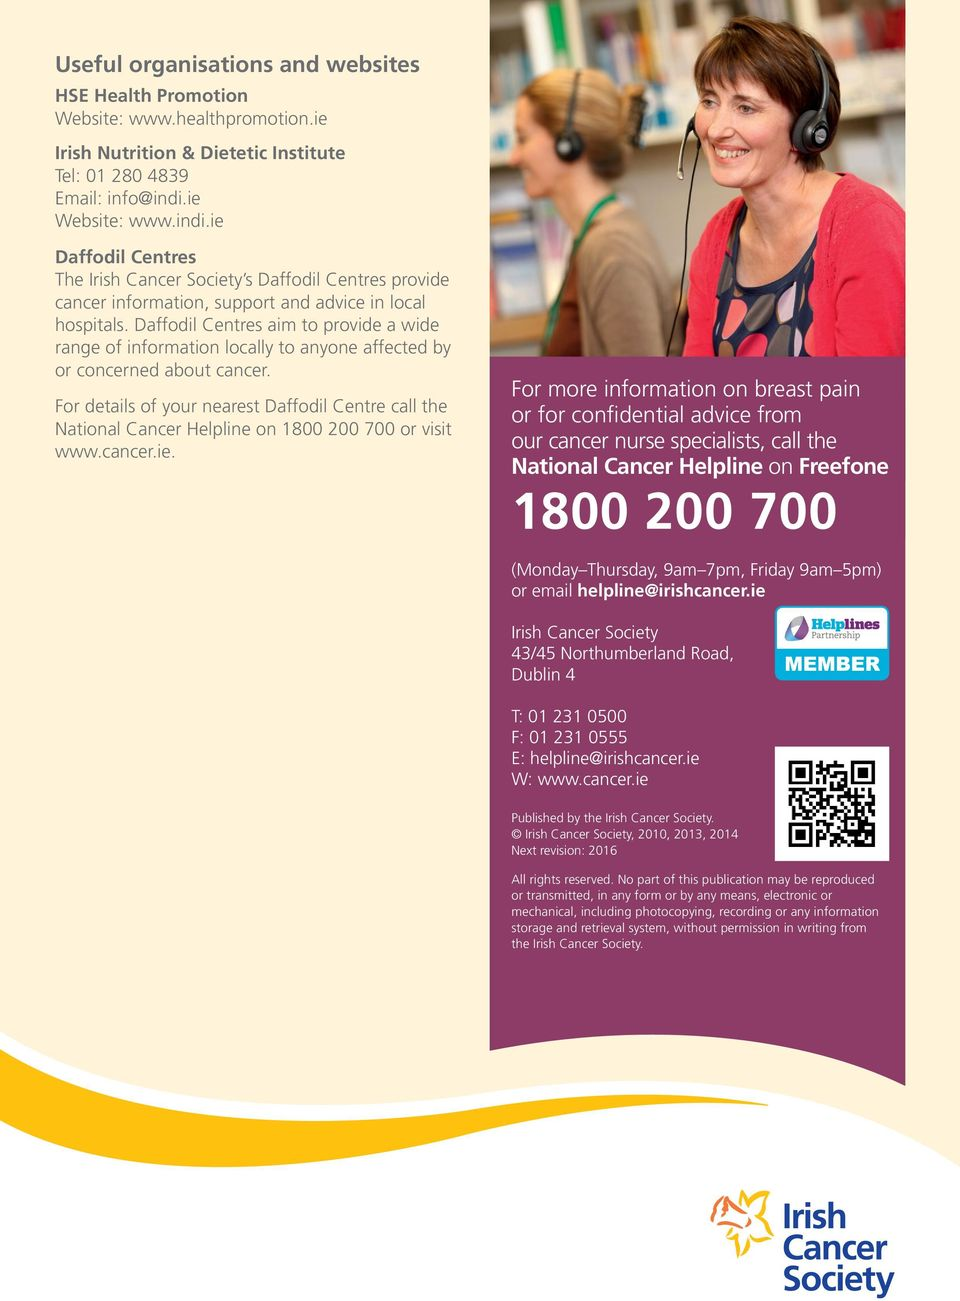 Daffodil Centres aim to provide a wide range of information locally to anyone affected by or concerned about cancer.